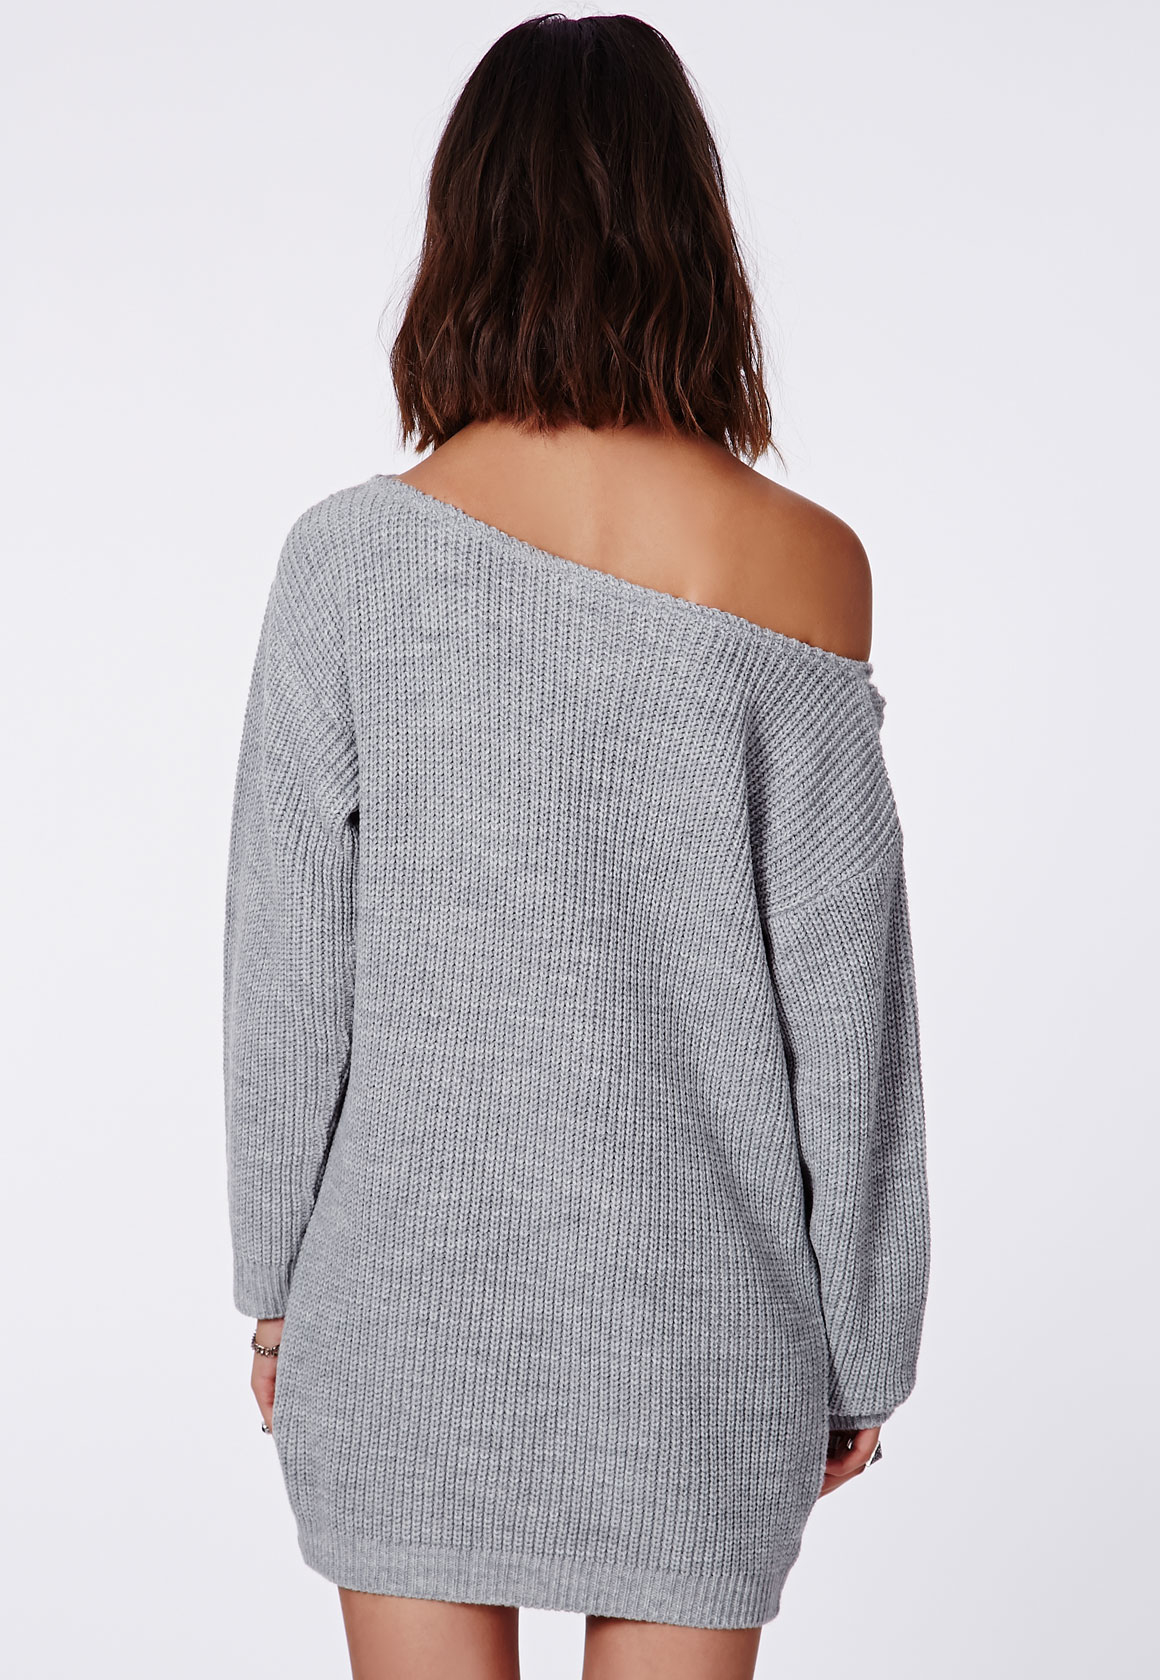 how to wear off the shoulder sweater